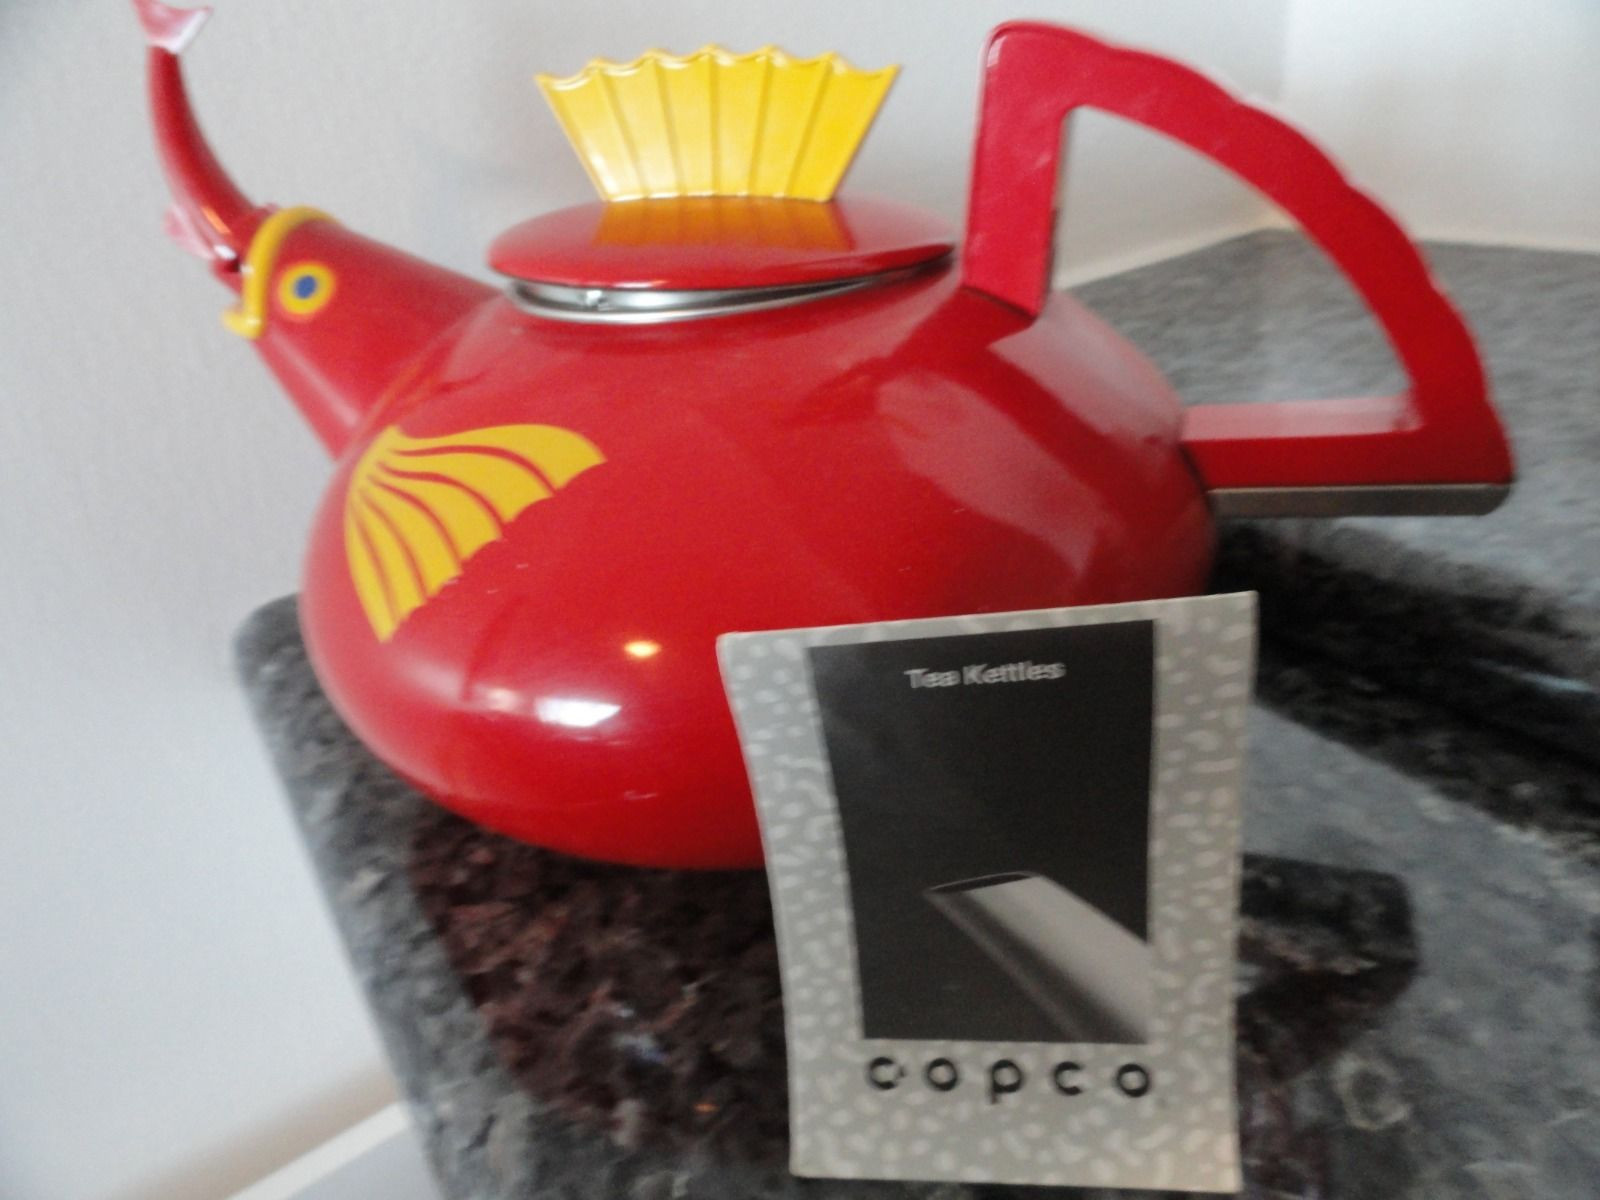 1994 Copco Under The Sea Tea Kettle Pot 2 1/2 Quart Harmonic Whistle Manual